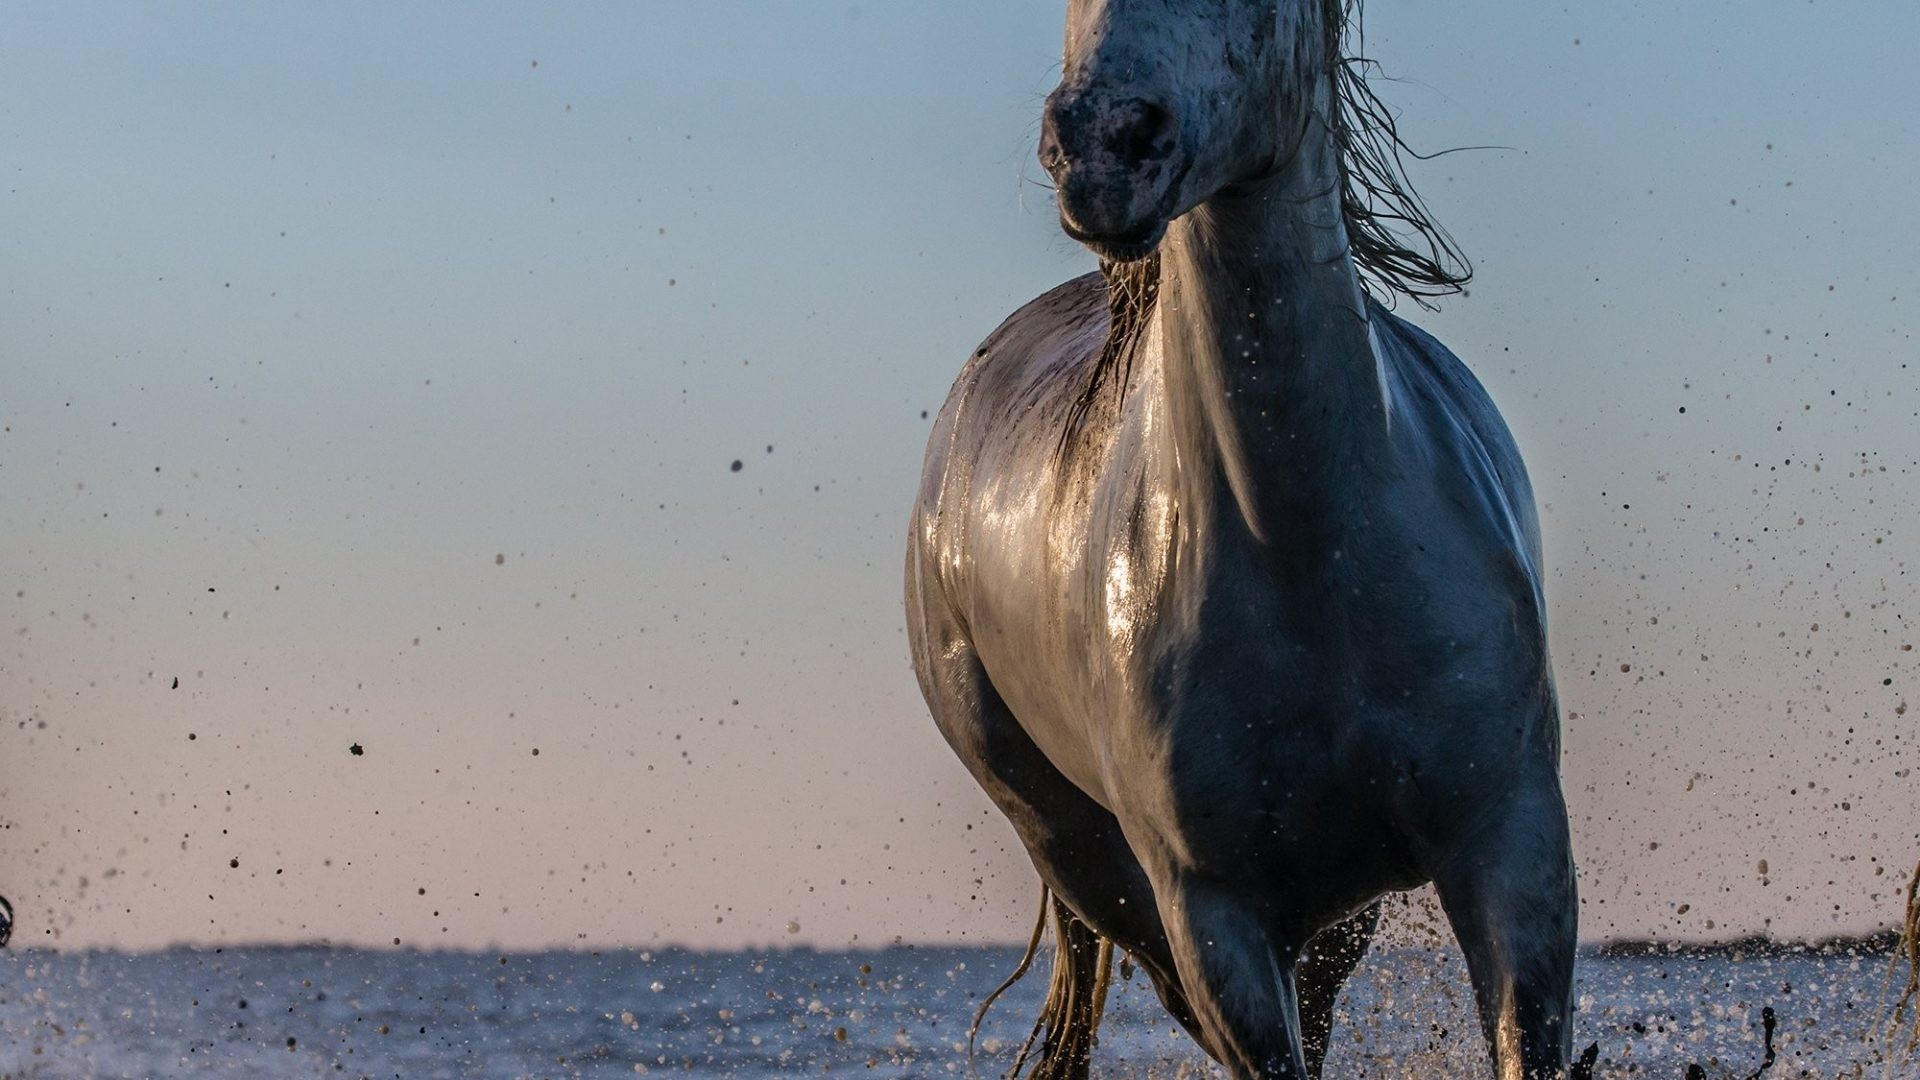 Res: 1920x1080, Spray Lake Drops Water Sea Ocean Horse Animal Wallpapers Picture